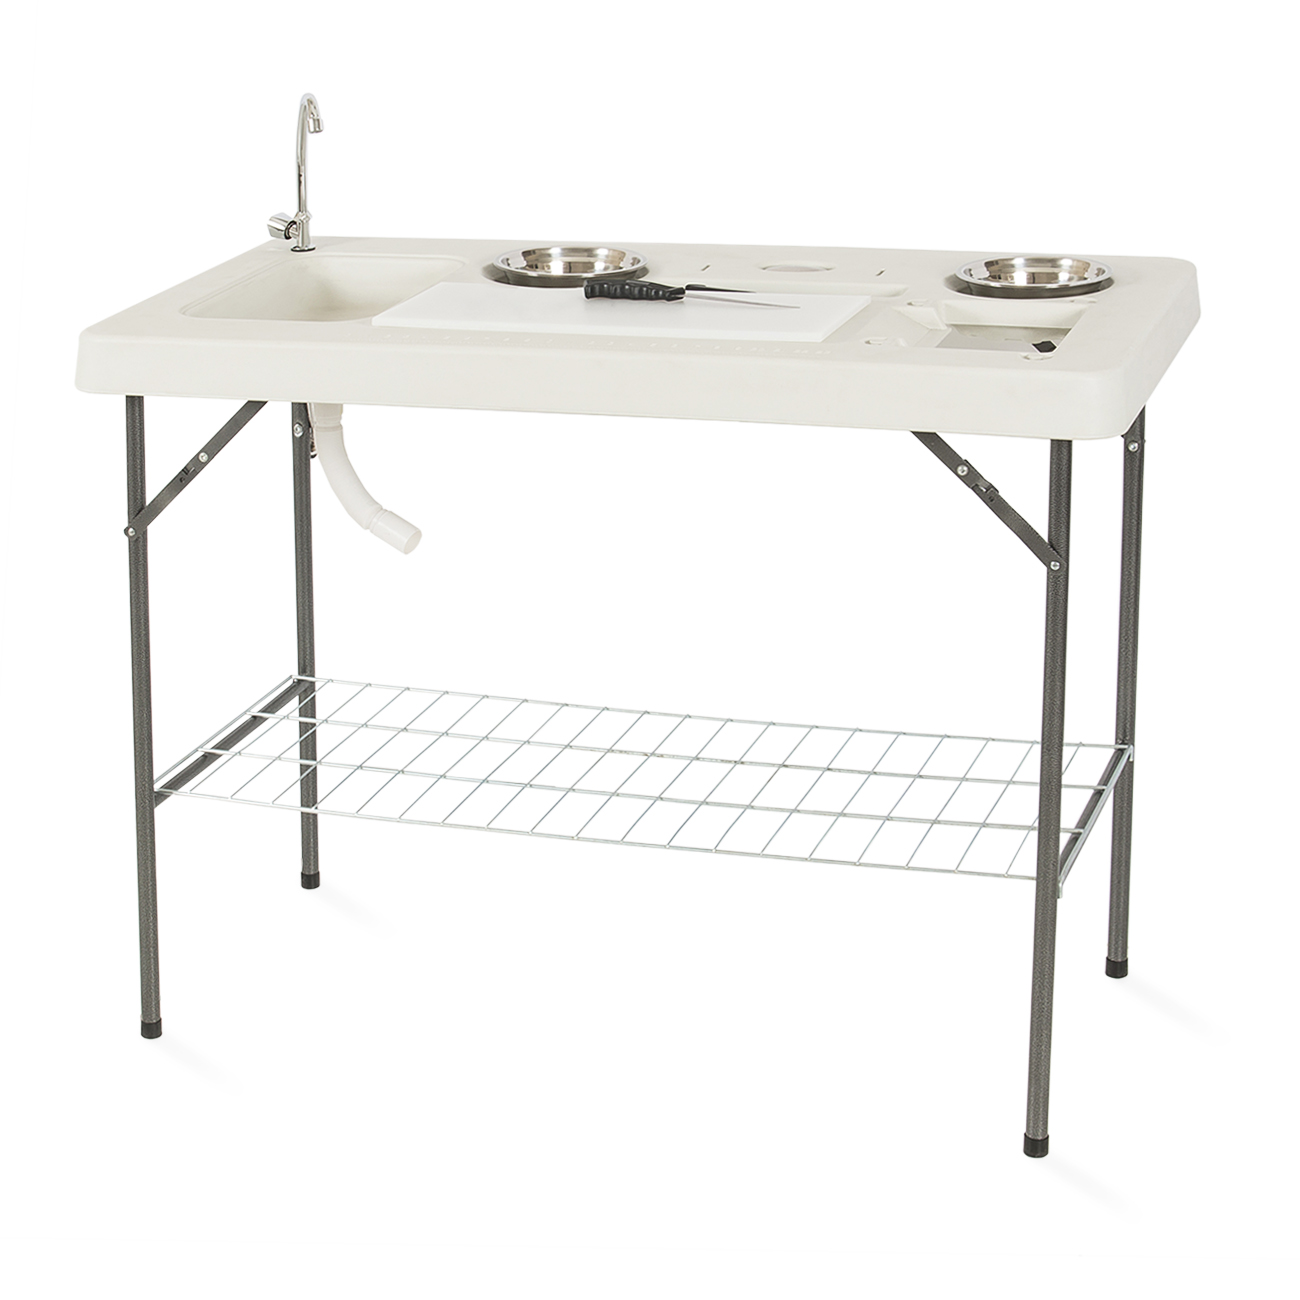 Onebigoutlet Fishing Table Outdoor Cutting Fillet Hunting w/ 2 Bowl ...